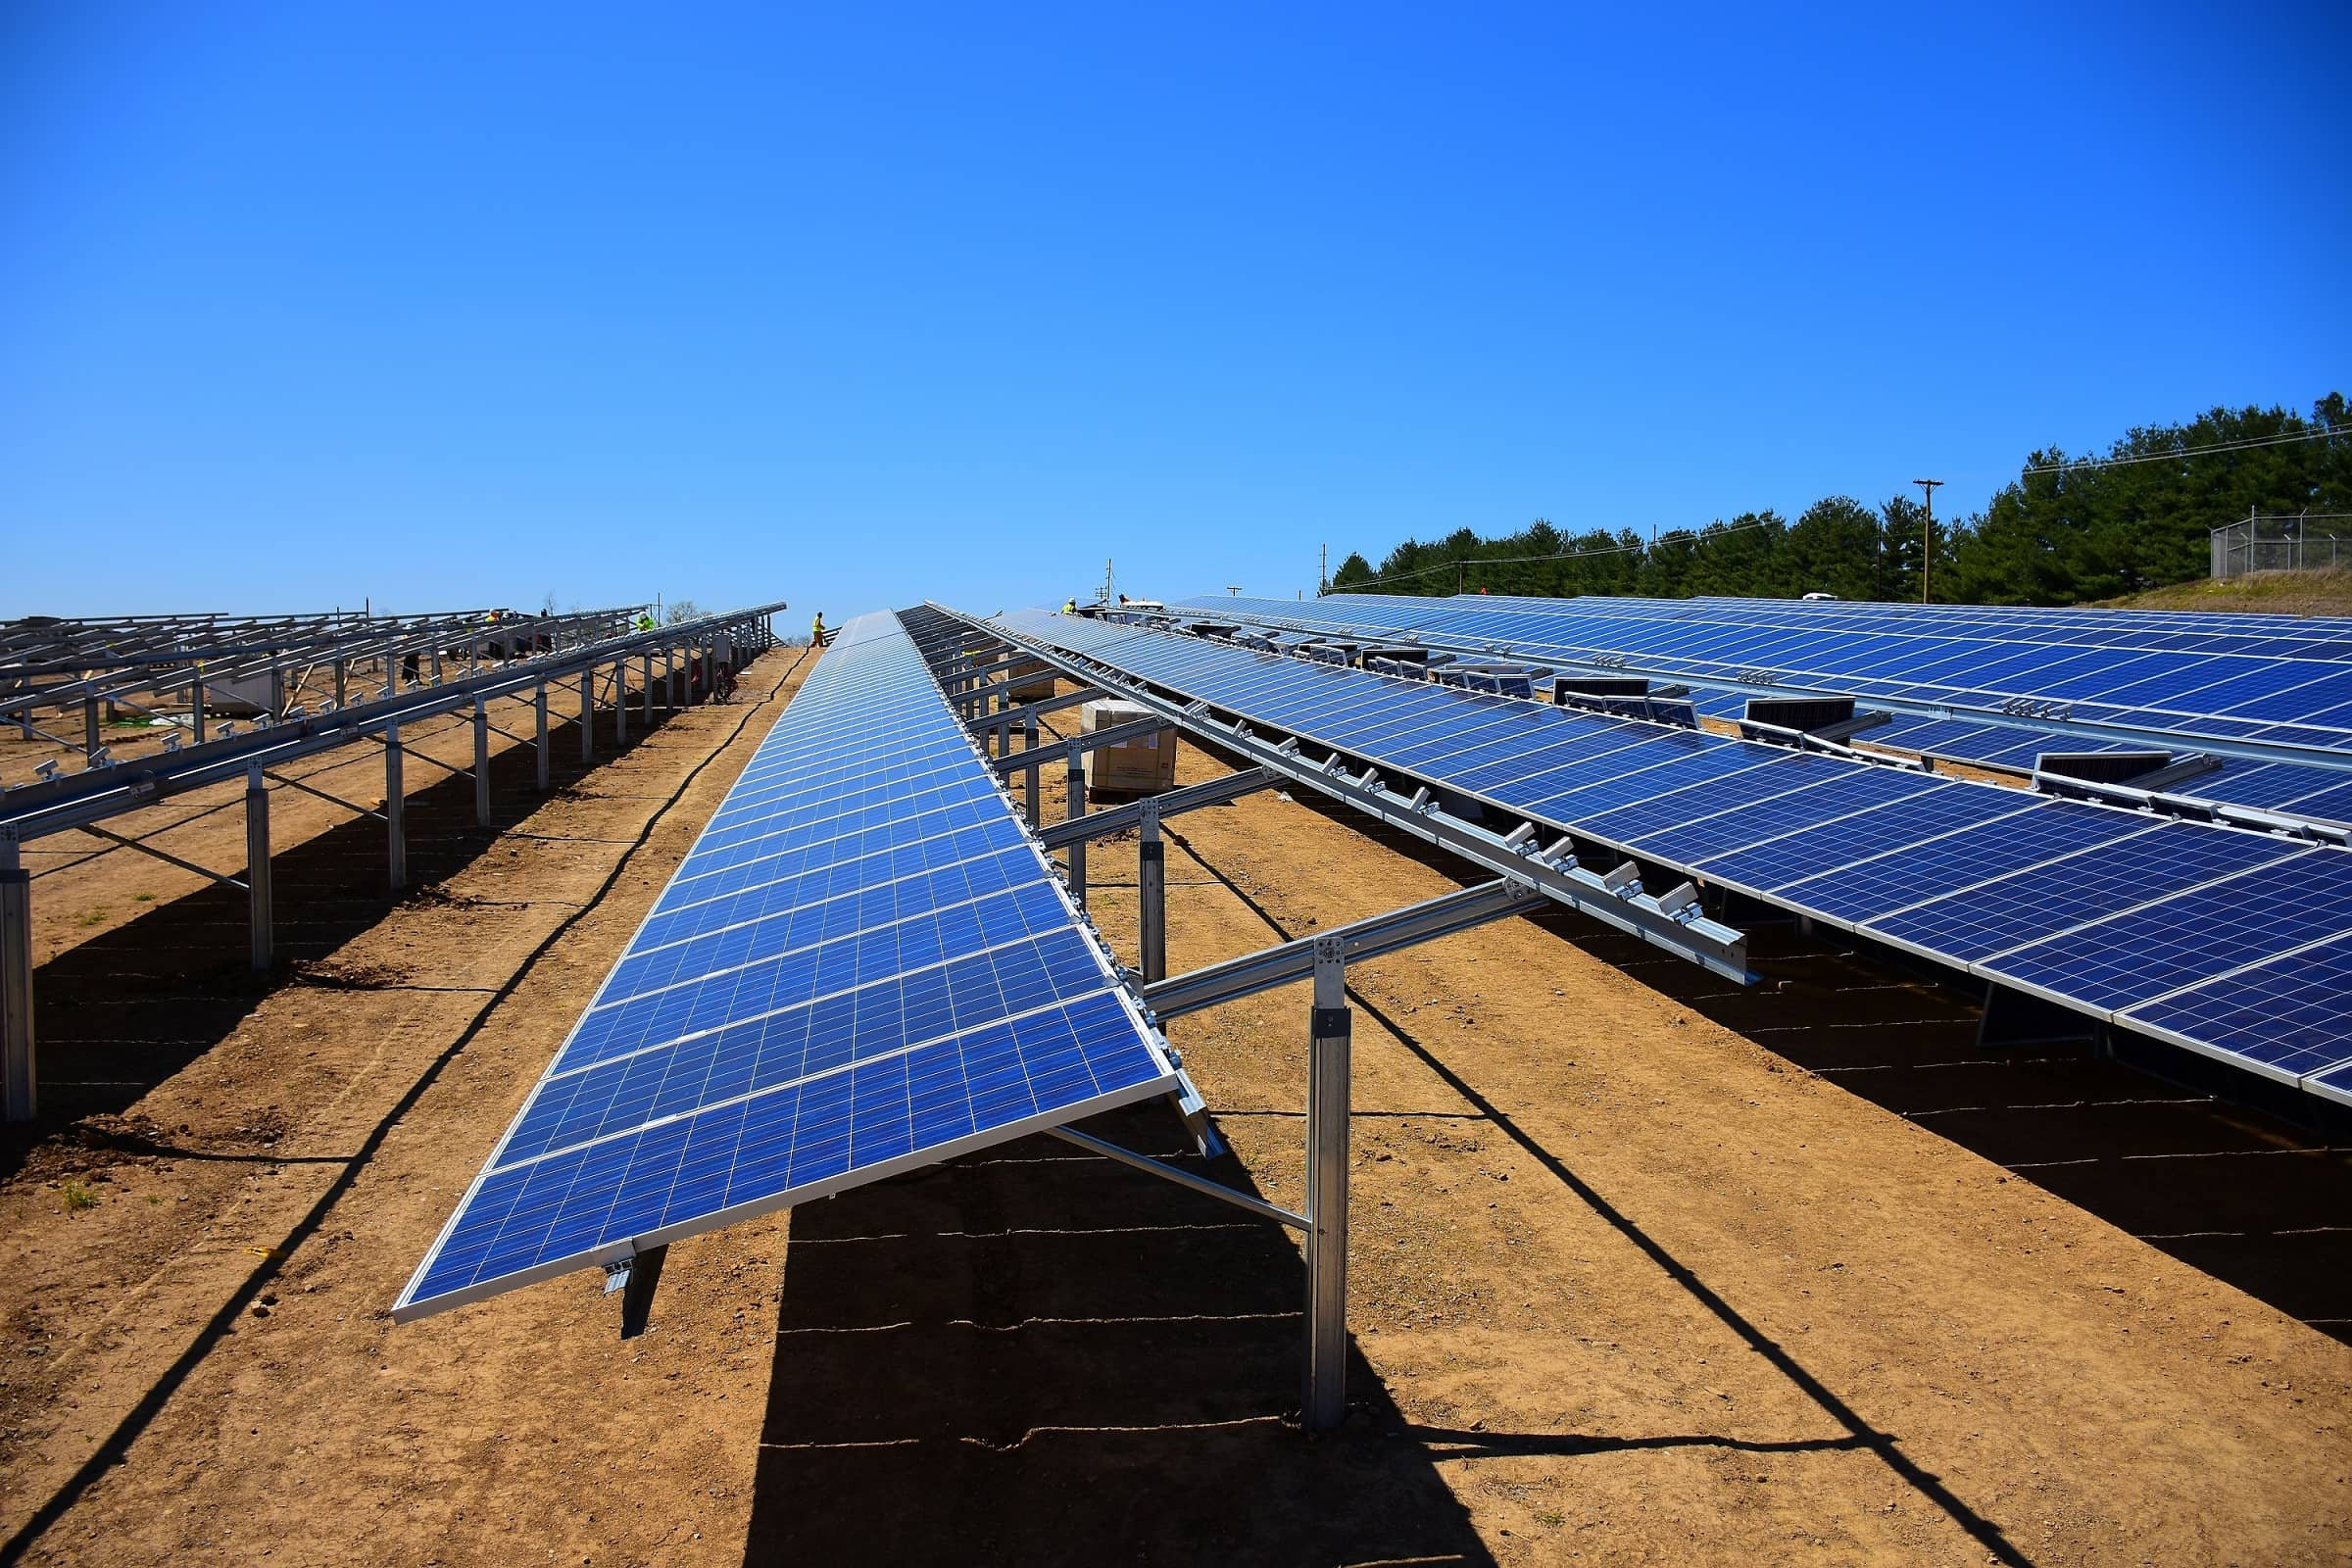 Solar-facility-construction-2 Utilities Unveil Solar Project At Multi-Power Site In Kentucky